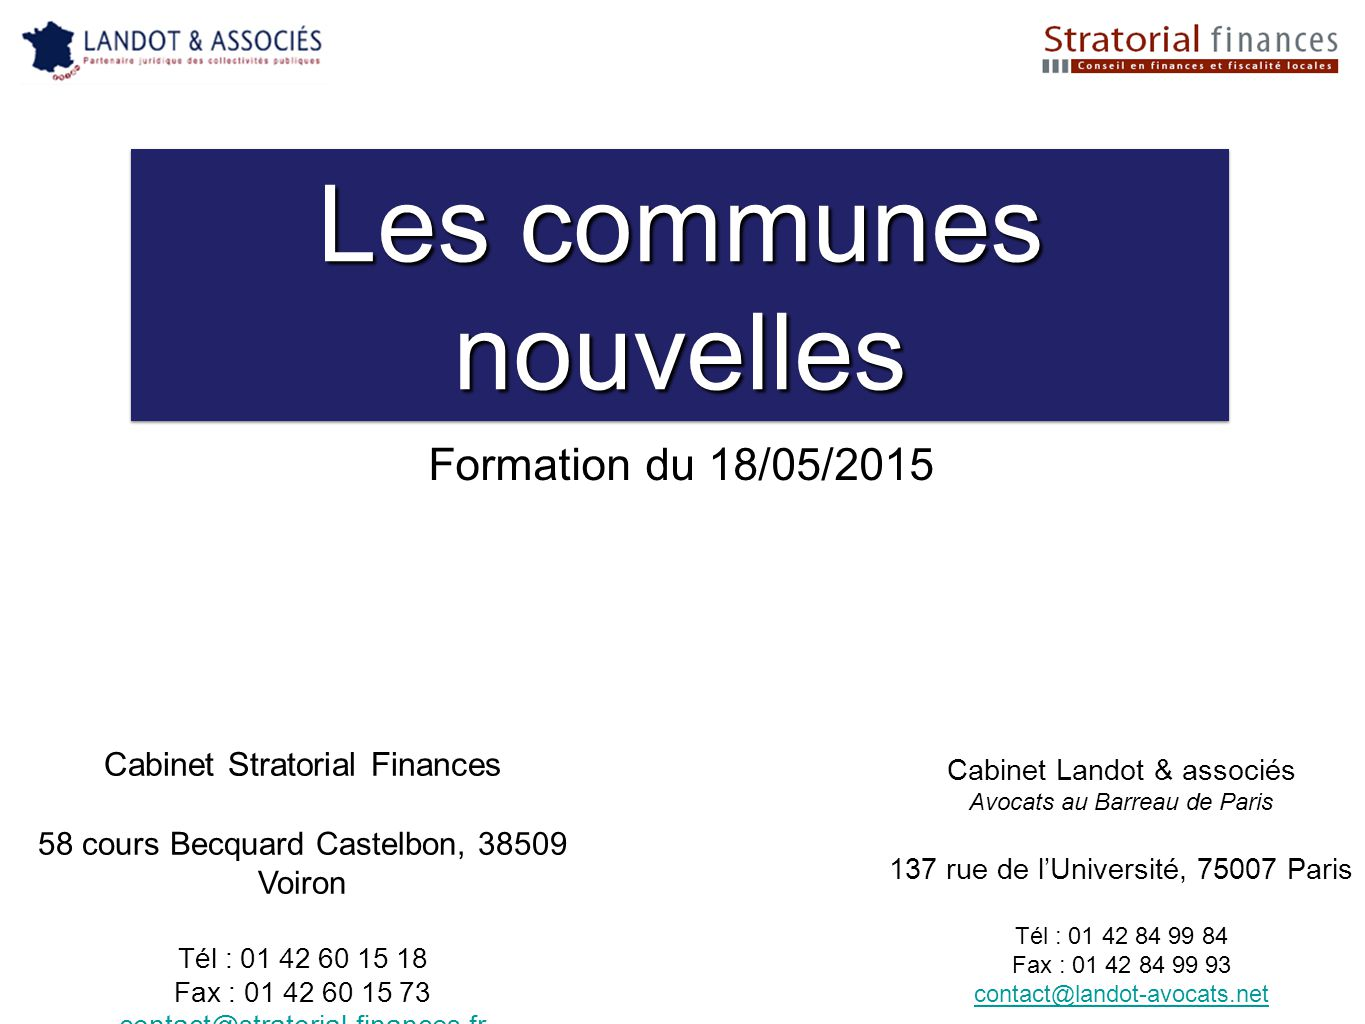 Cabinet stratorial finances in marriage